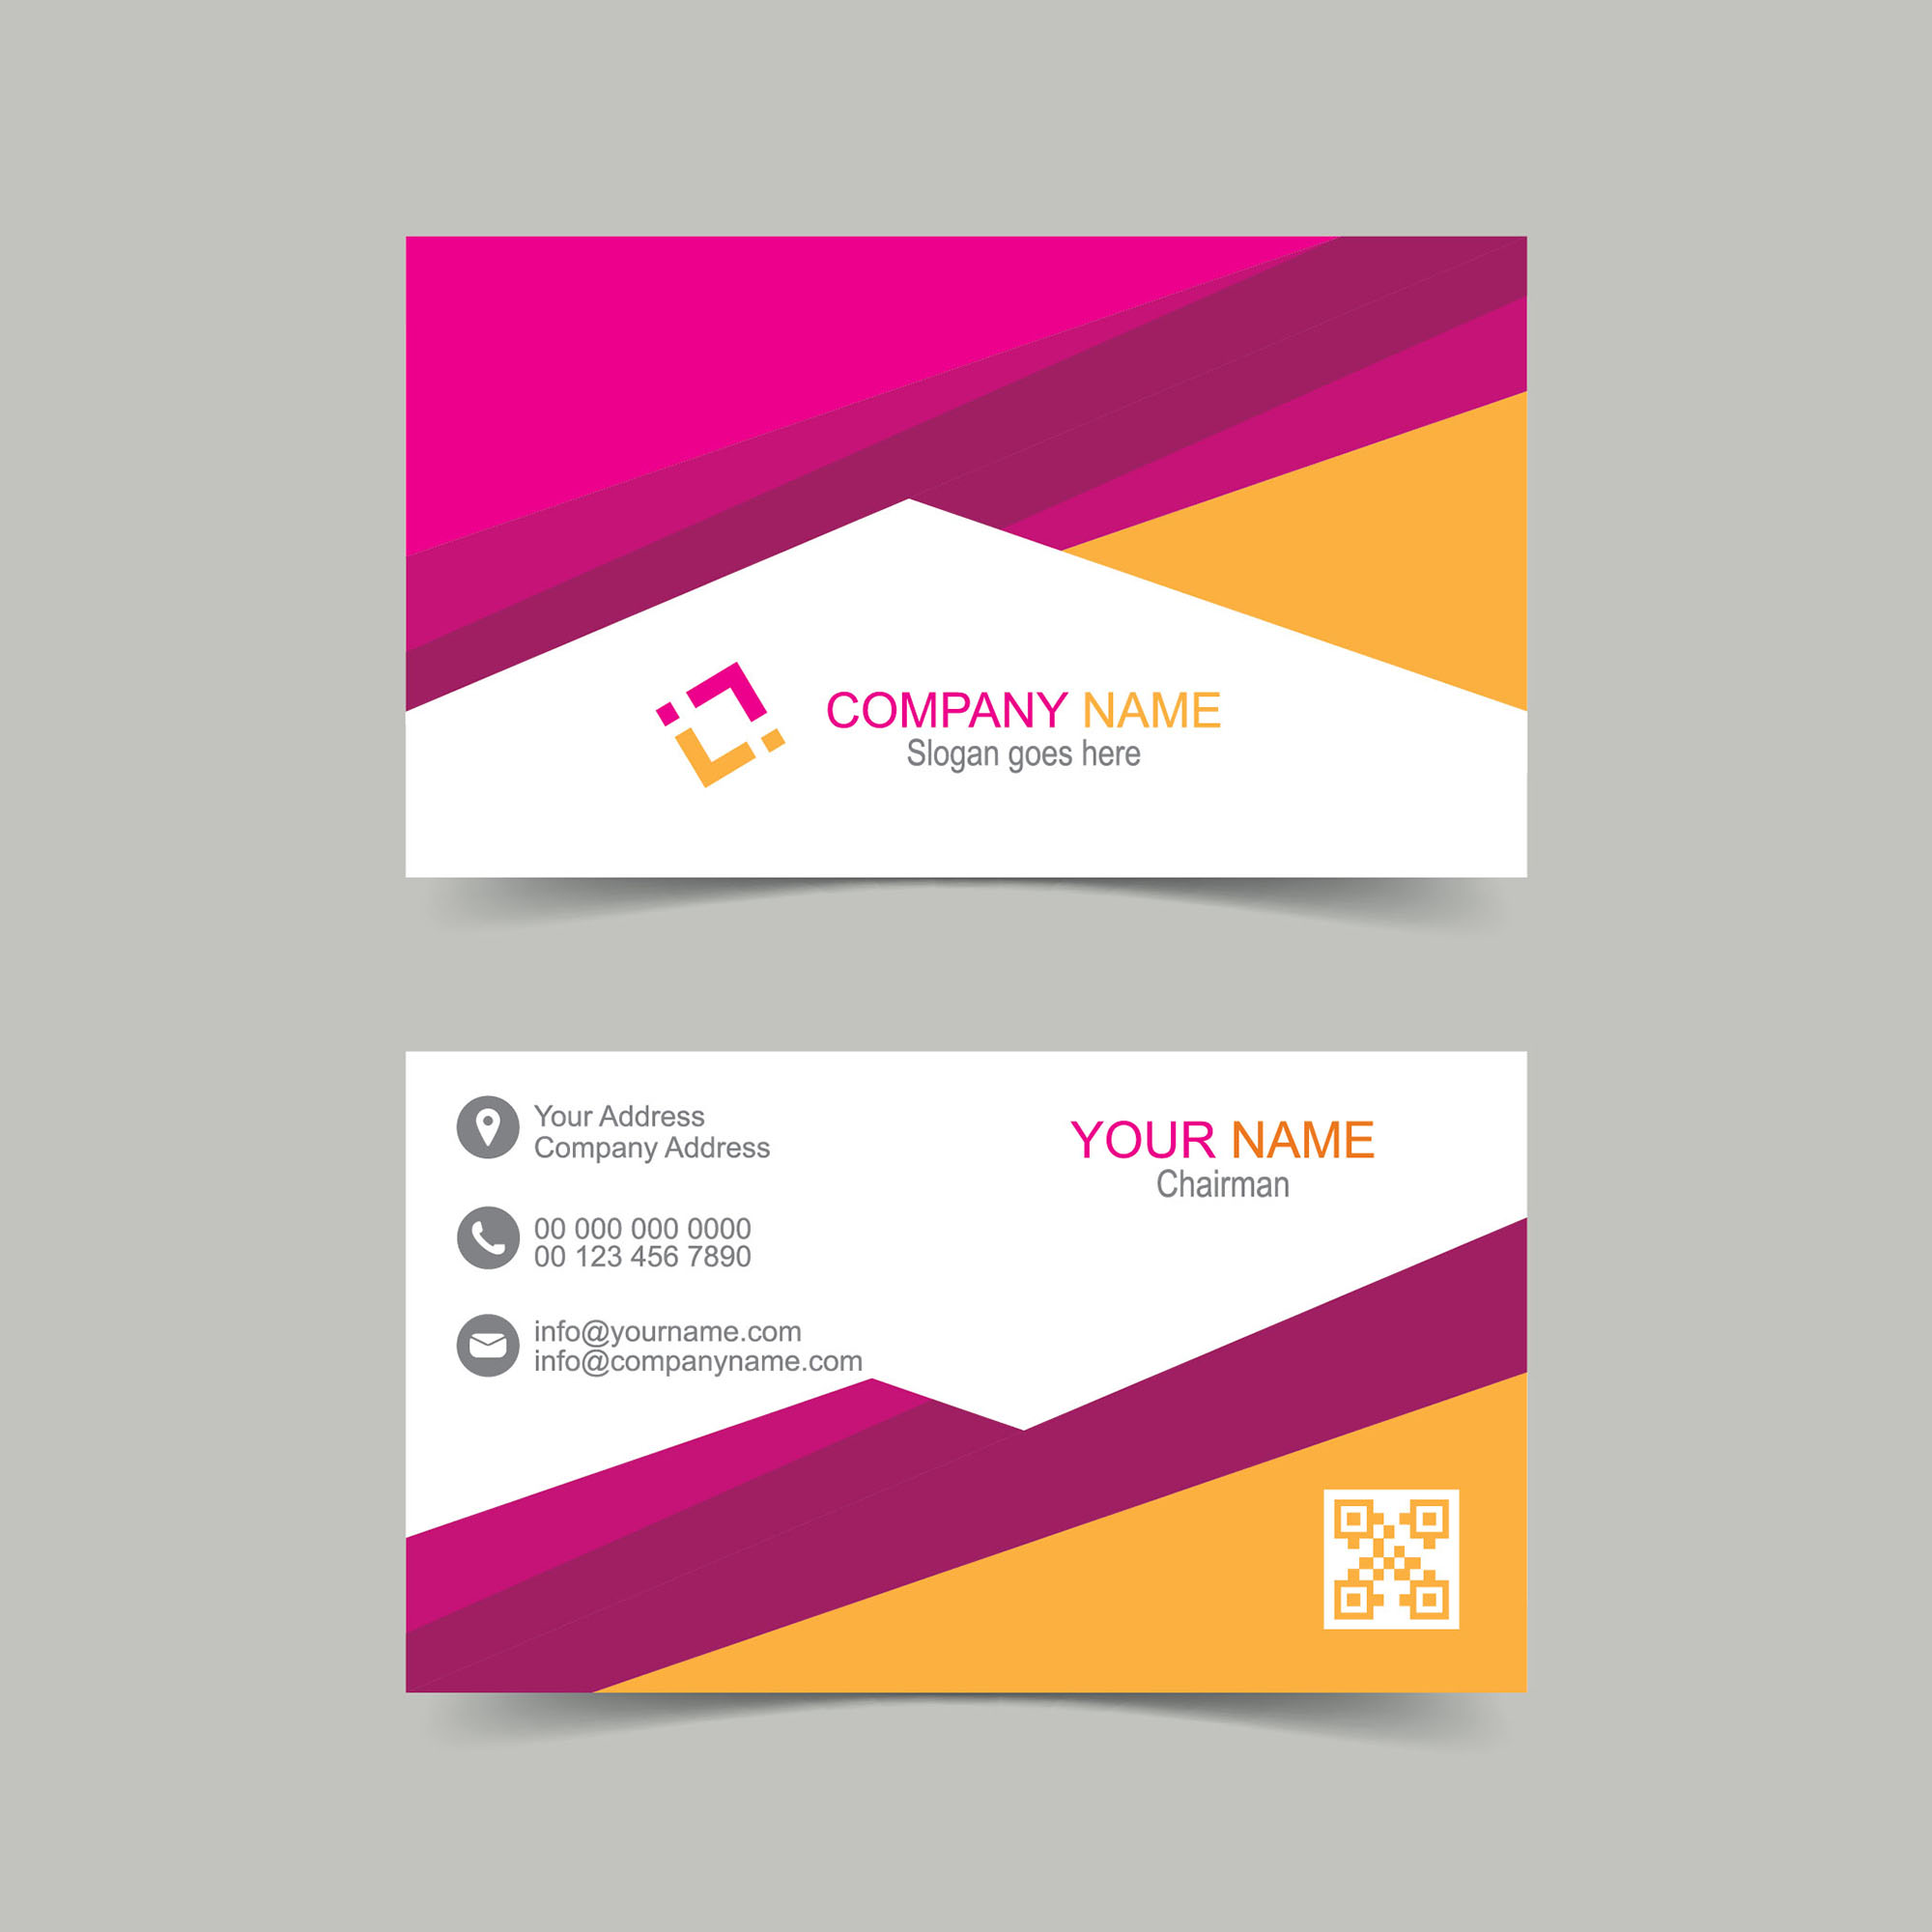 Vector business card design free download wisxi business card business cards business card design business card template design templates accmission Images